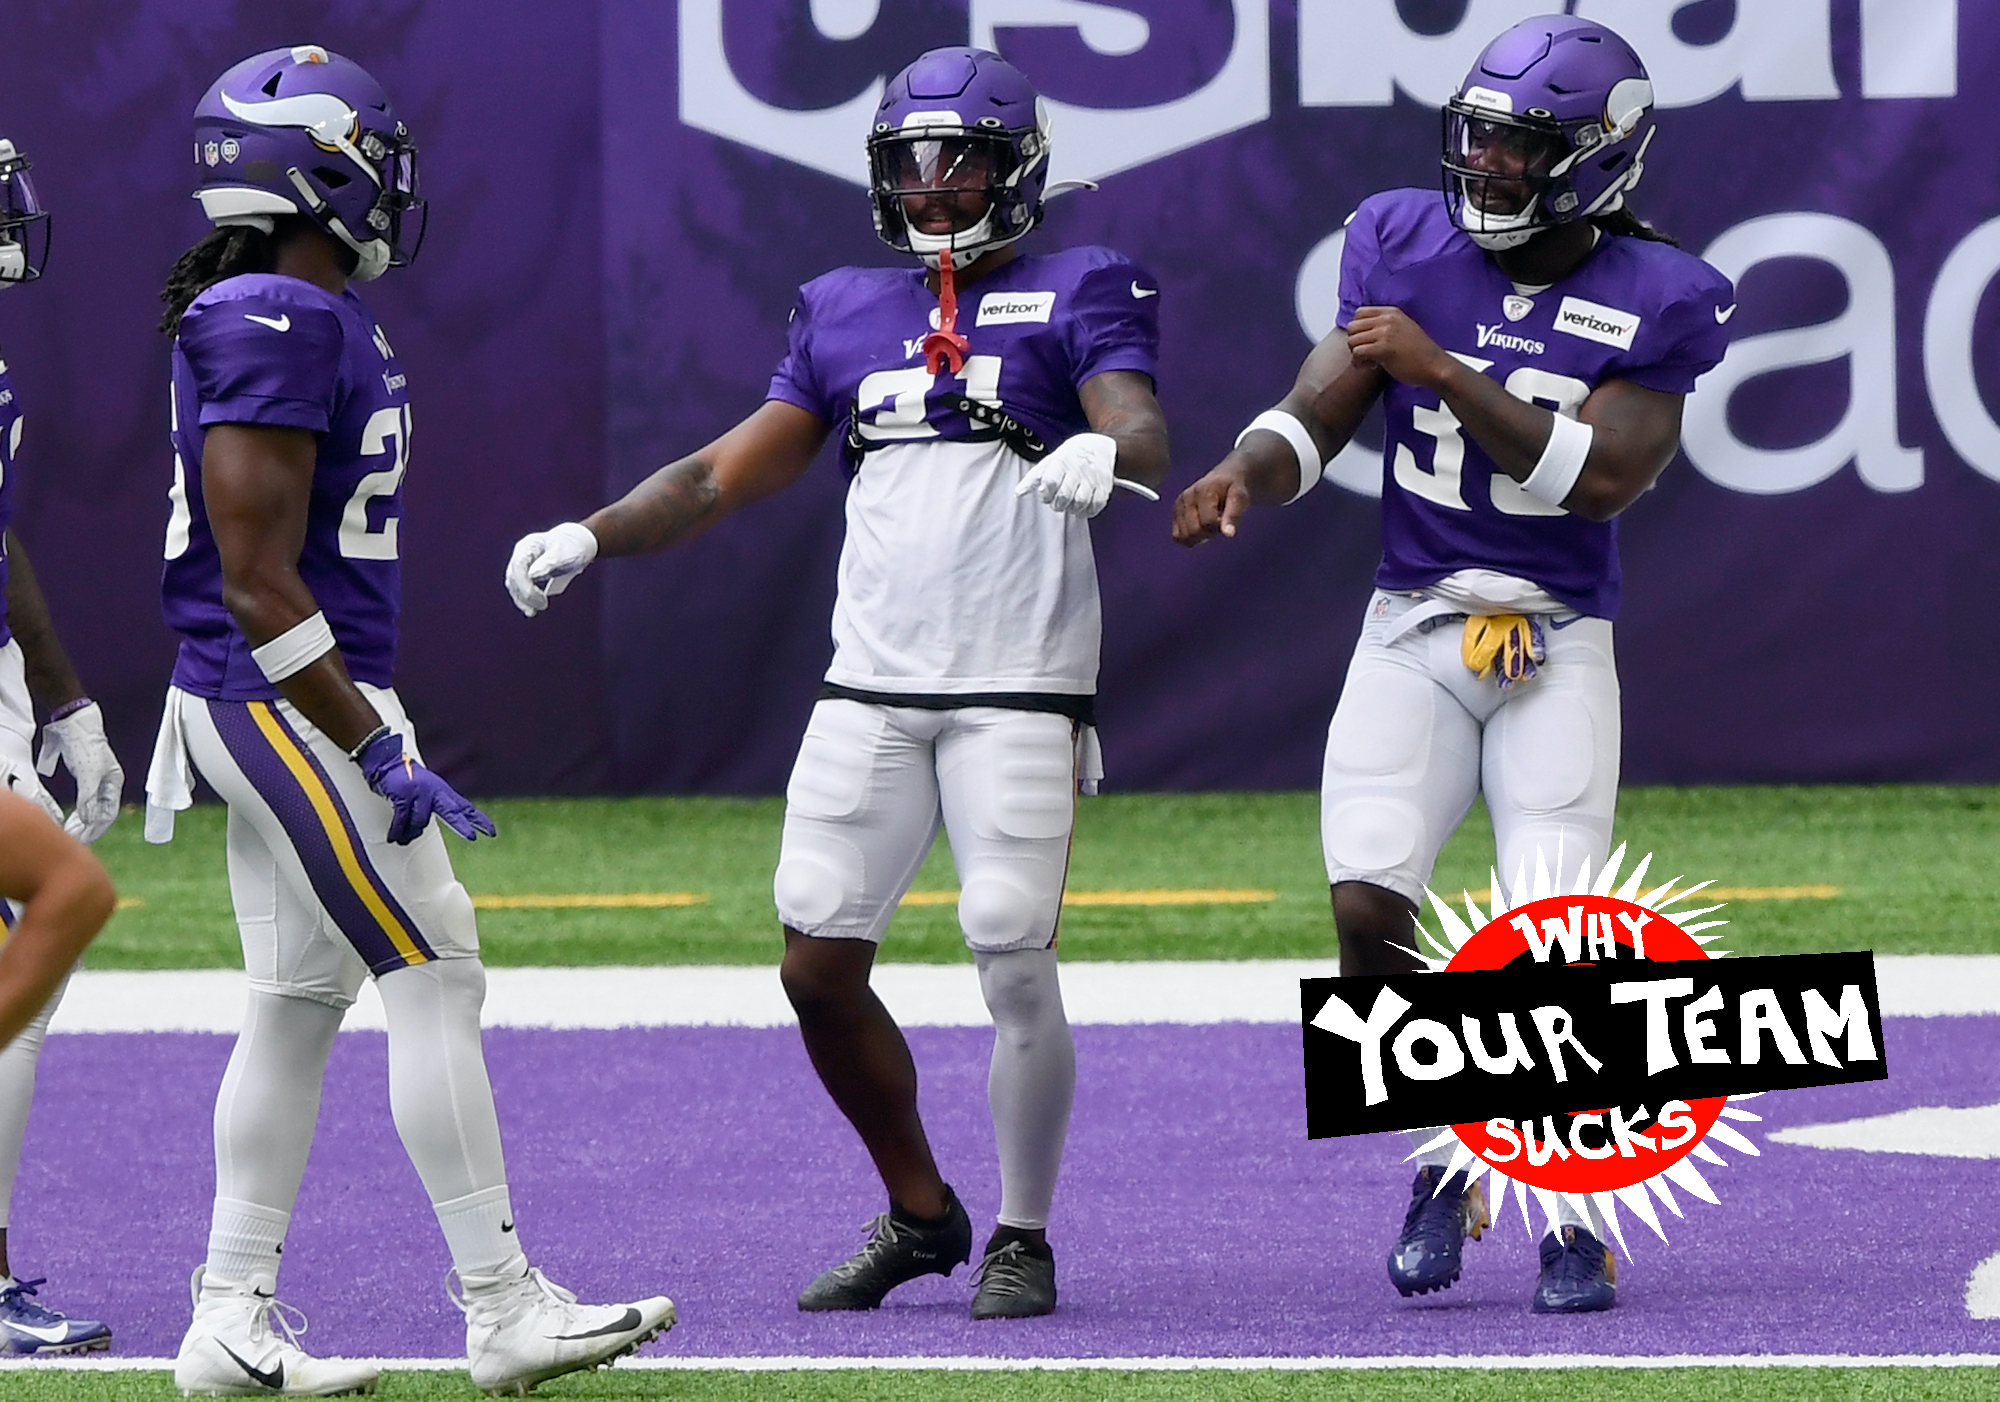 MINNEAPOLIS, MINNESOTA - AUGUST 28: (L-R) Running backs Alexander Mattison #25, Ameer Abdullah #31 and Dalvin Cook #33 of the Minnesota Vikings dance during training camp on August 28, 2020 at U.S. Bank Stadium in Minneapolis, Minnesota. (Photo by Hannah Foslien/Getty Images)